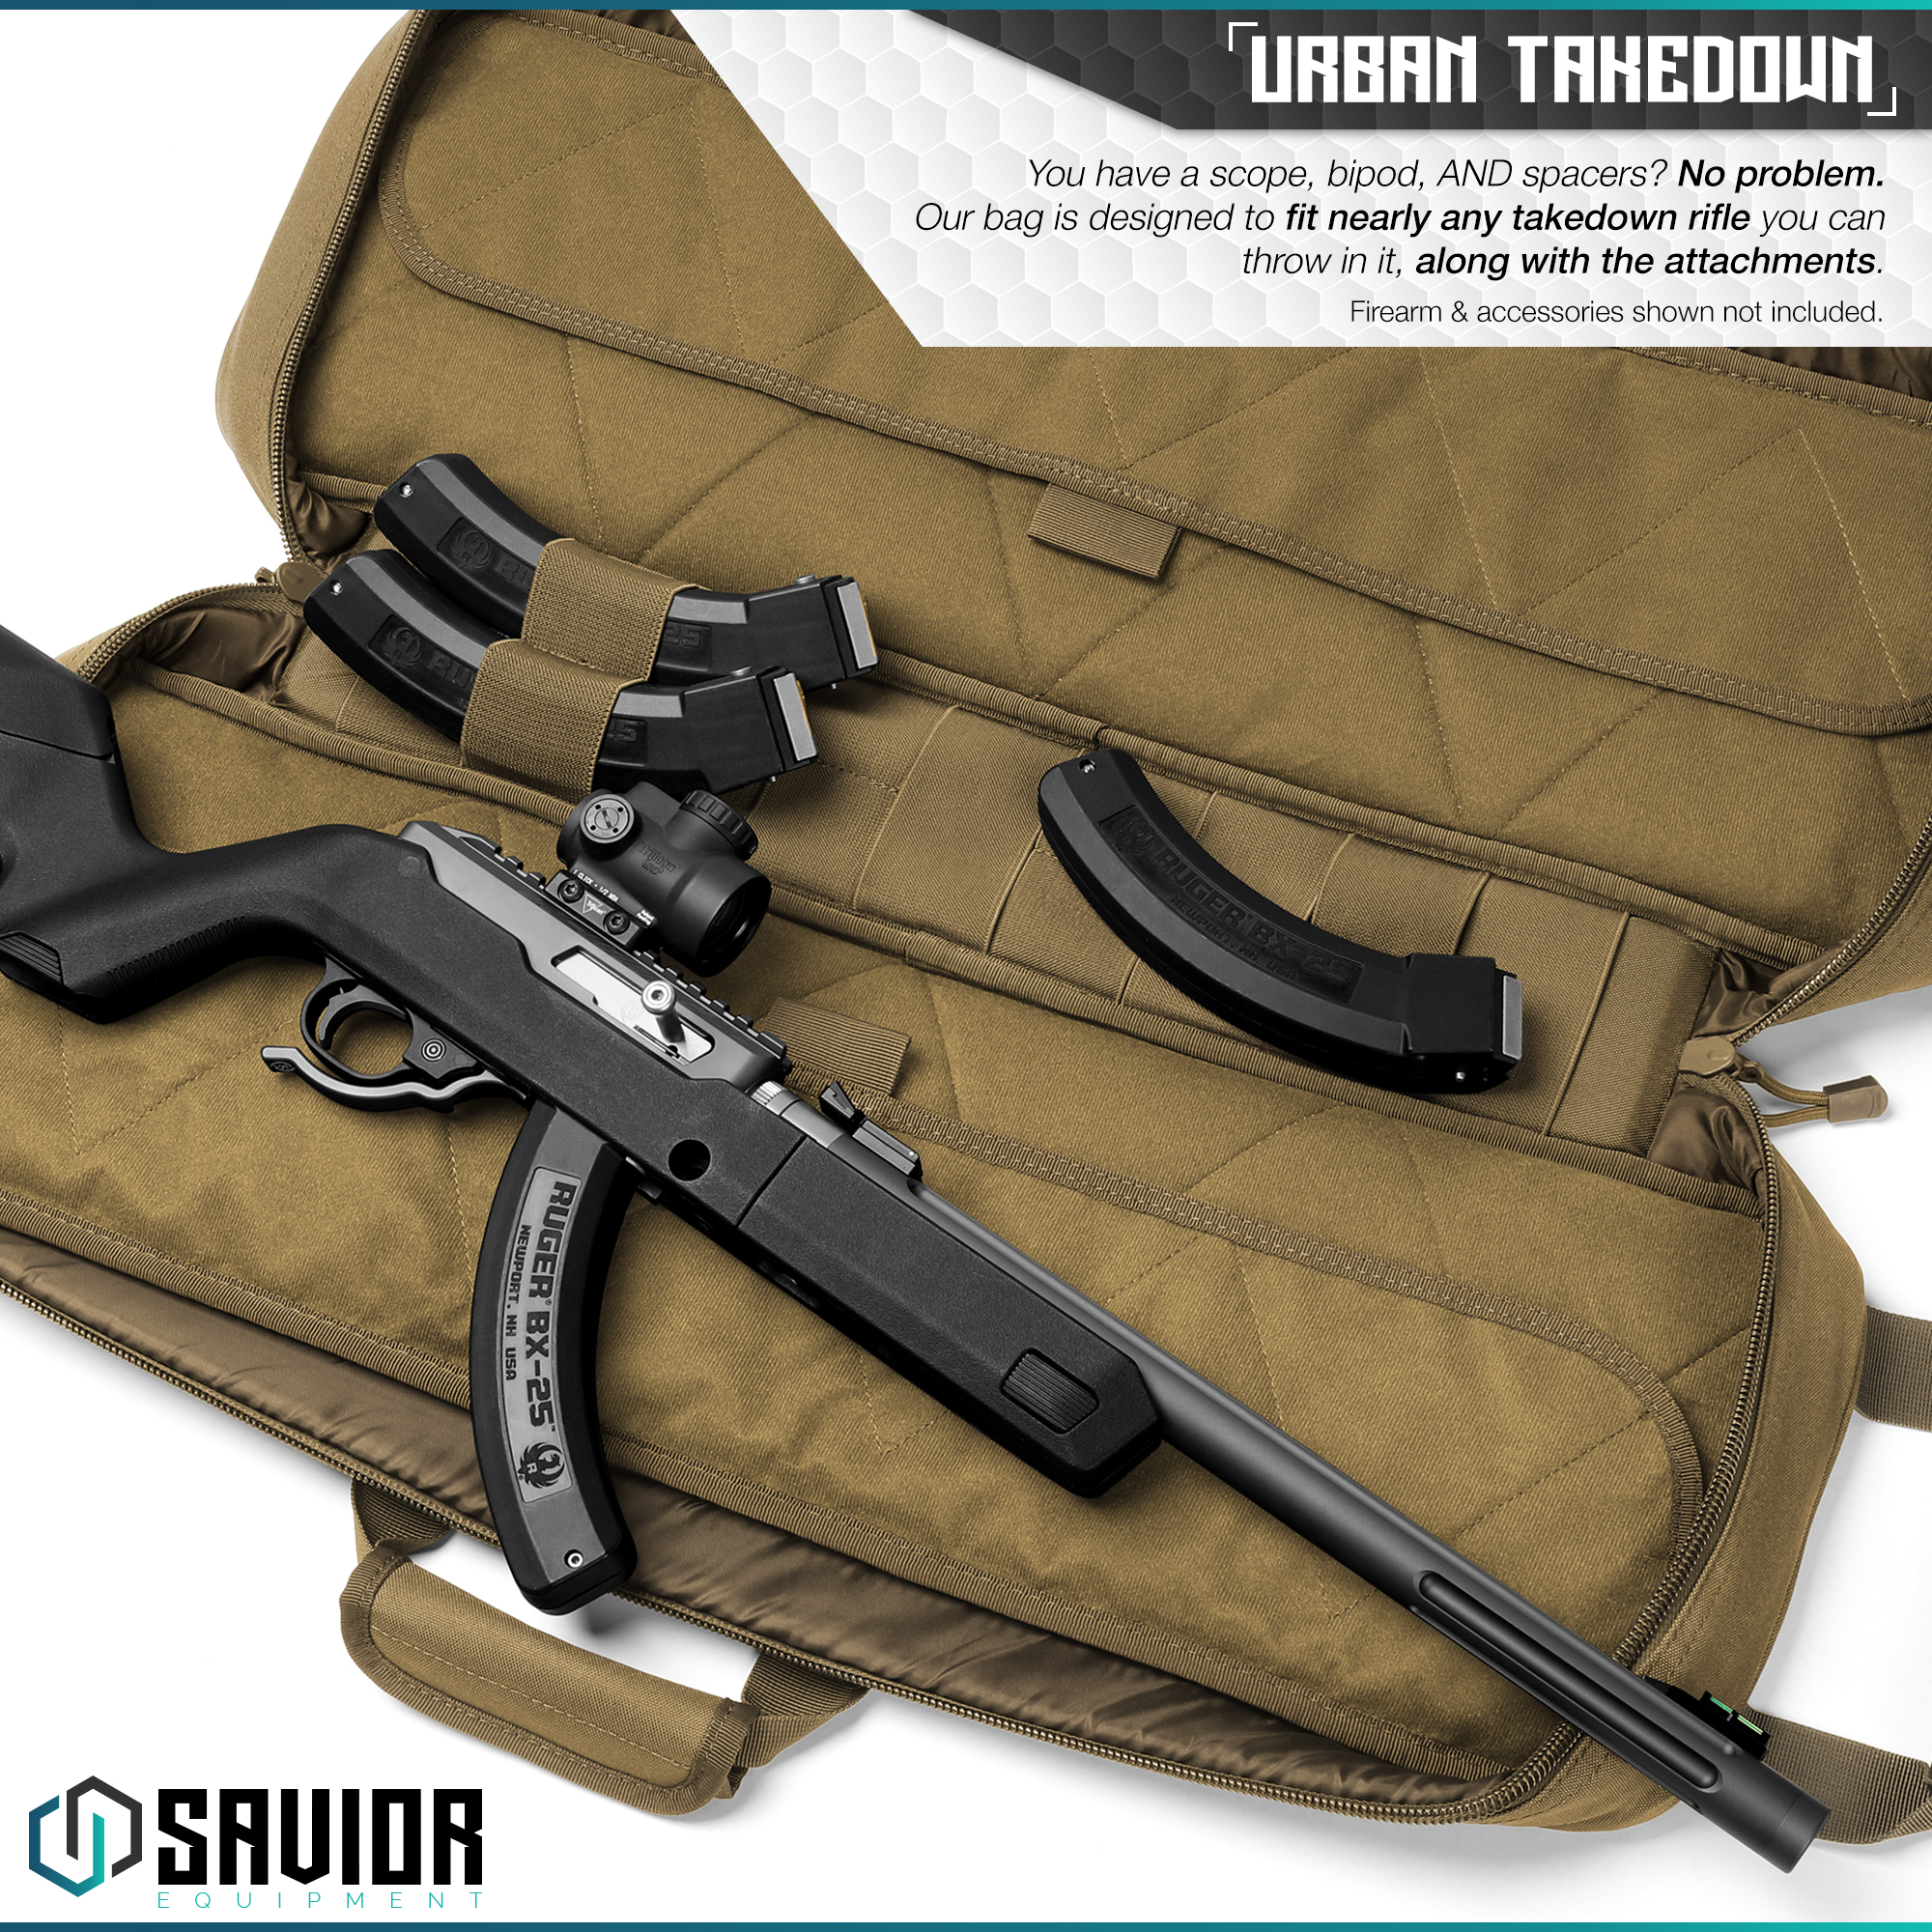 Savior-Tactical-Urban-Takedown-Bag-Carbine-Rifle-Padded-Shotgun-Firearm-Backpack thumbnail 3